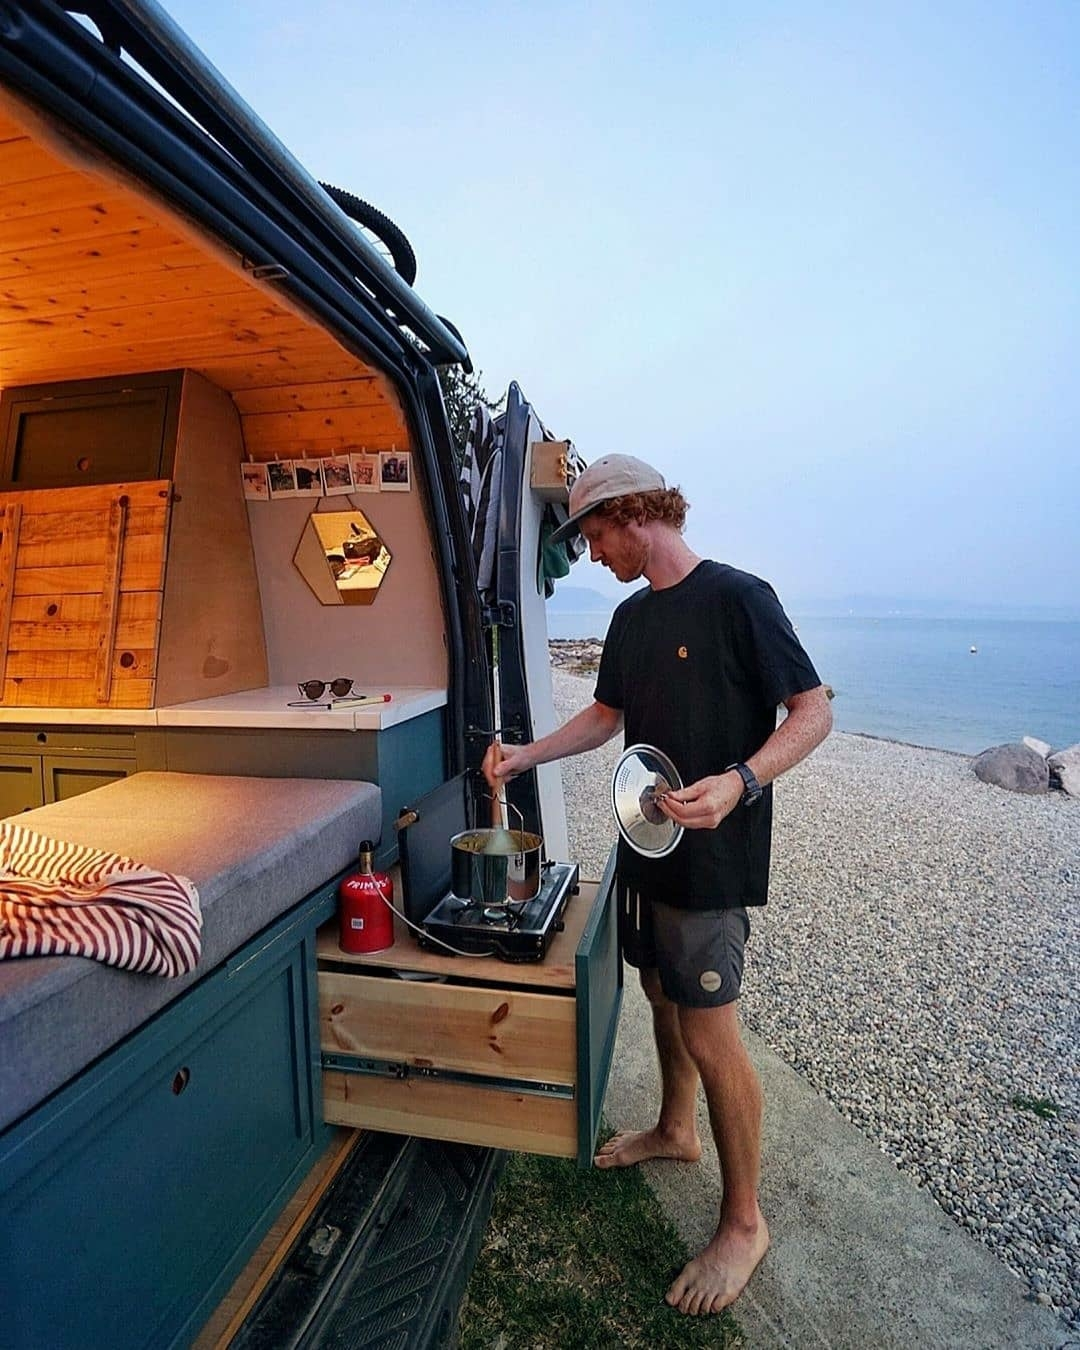 man cooking on camper van near ocean